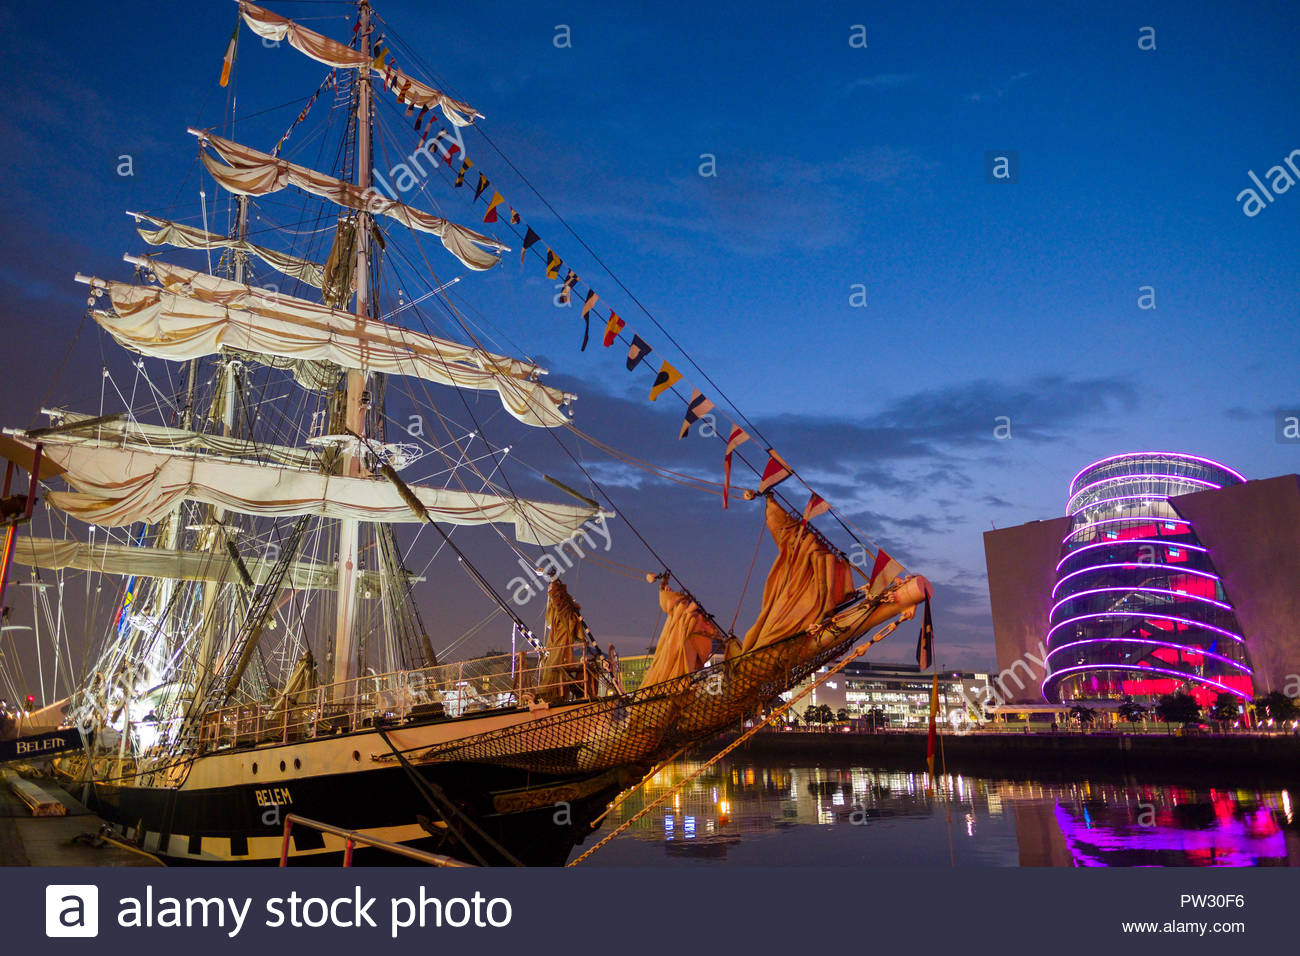 The tall ship Belem docked along the River Liffey at night during the 2018 Tall Ships Regatta, Docklands, Dublin, Leinster, Ireland Stock Photo